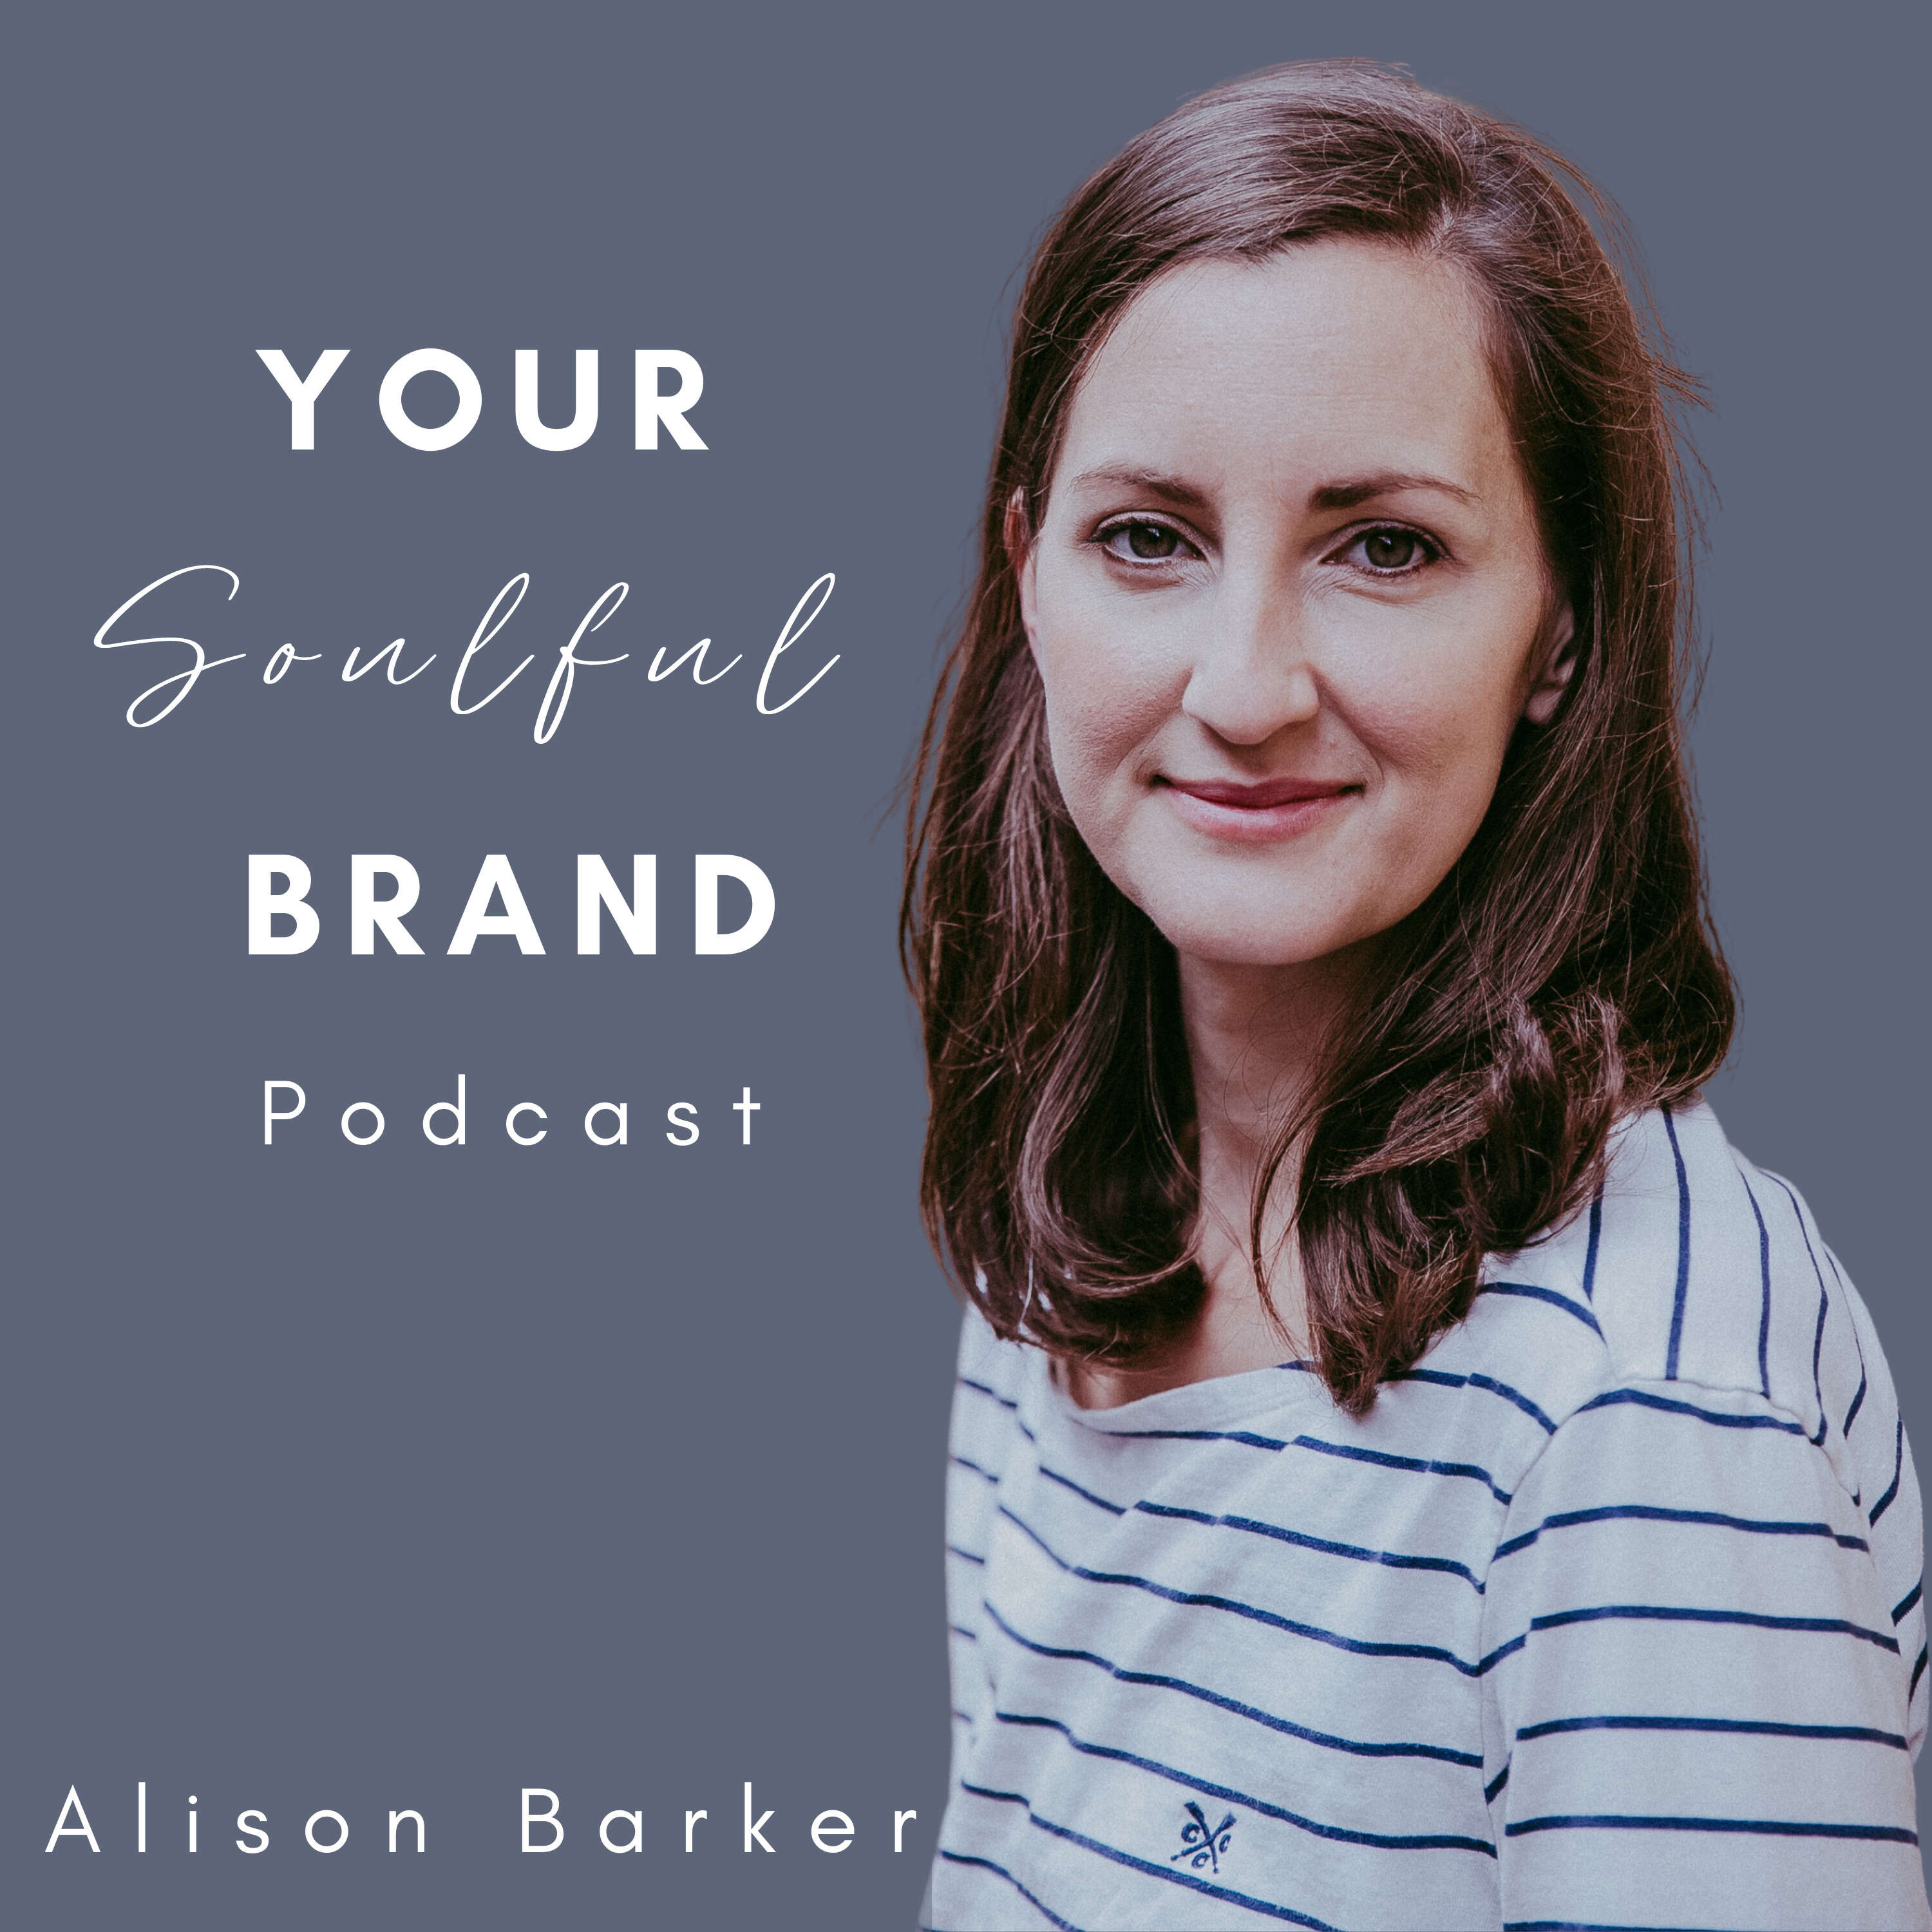 Your soulful brand